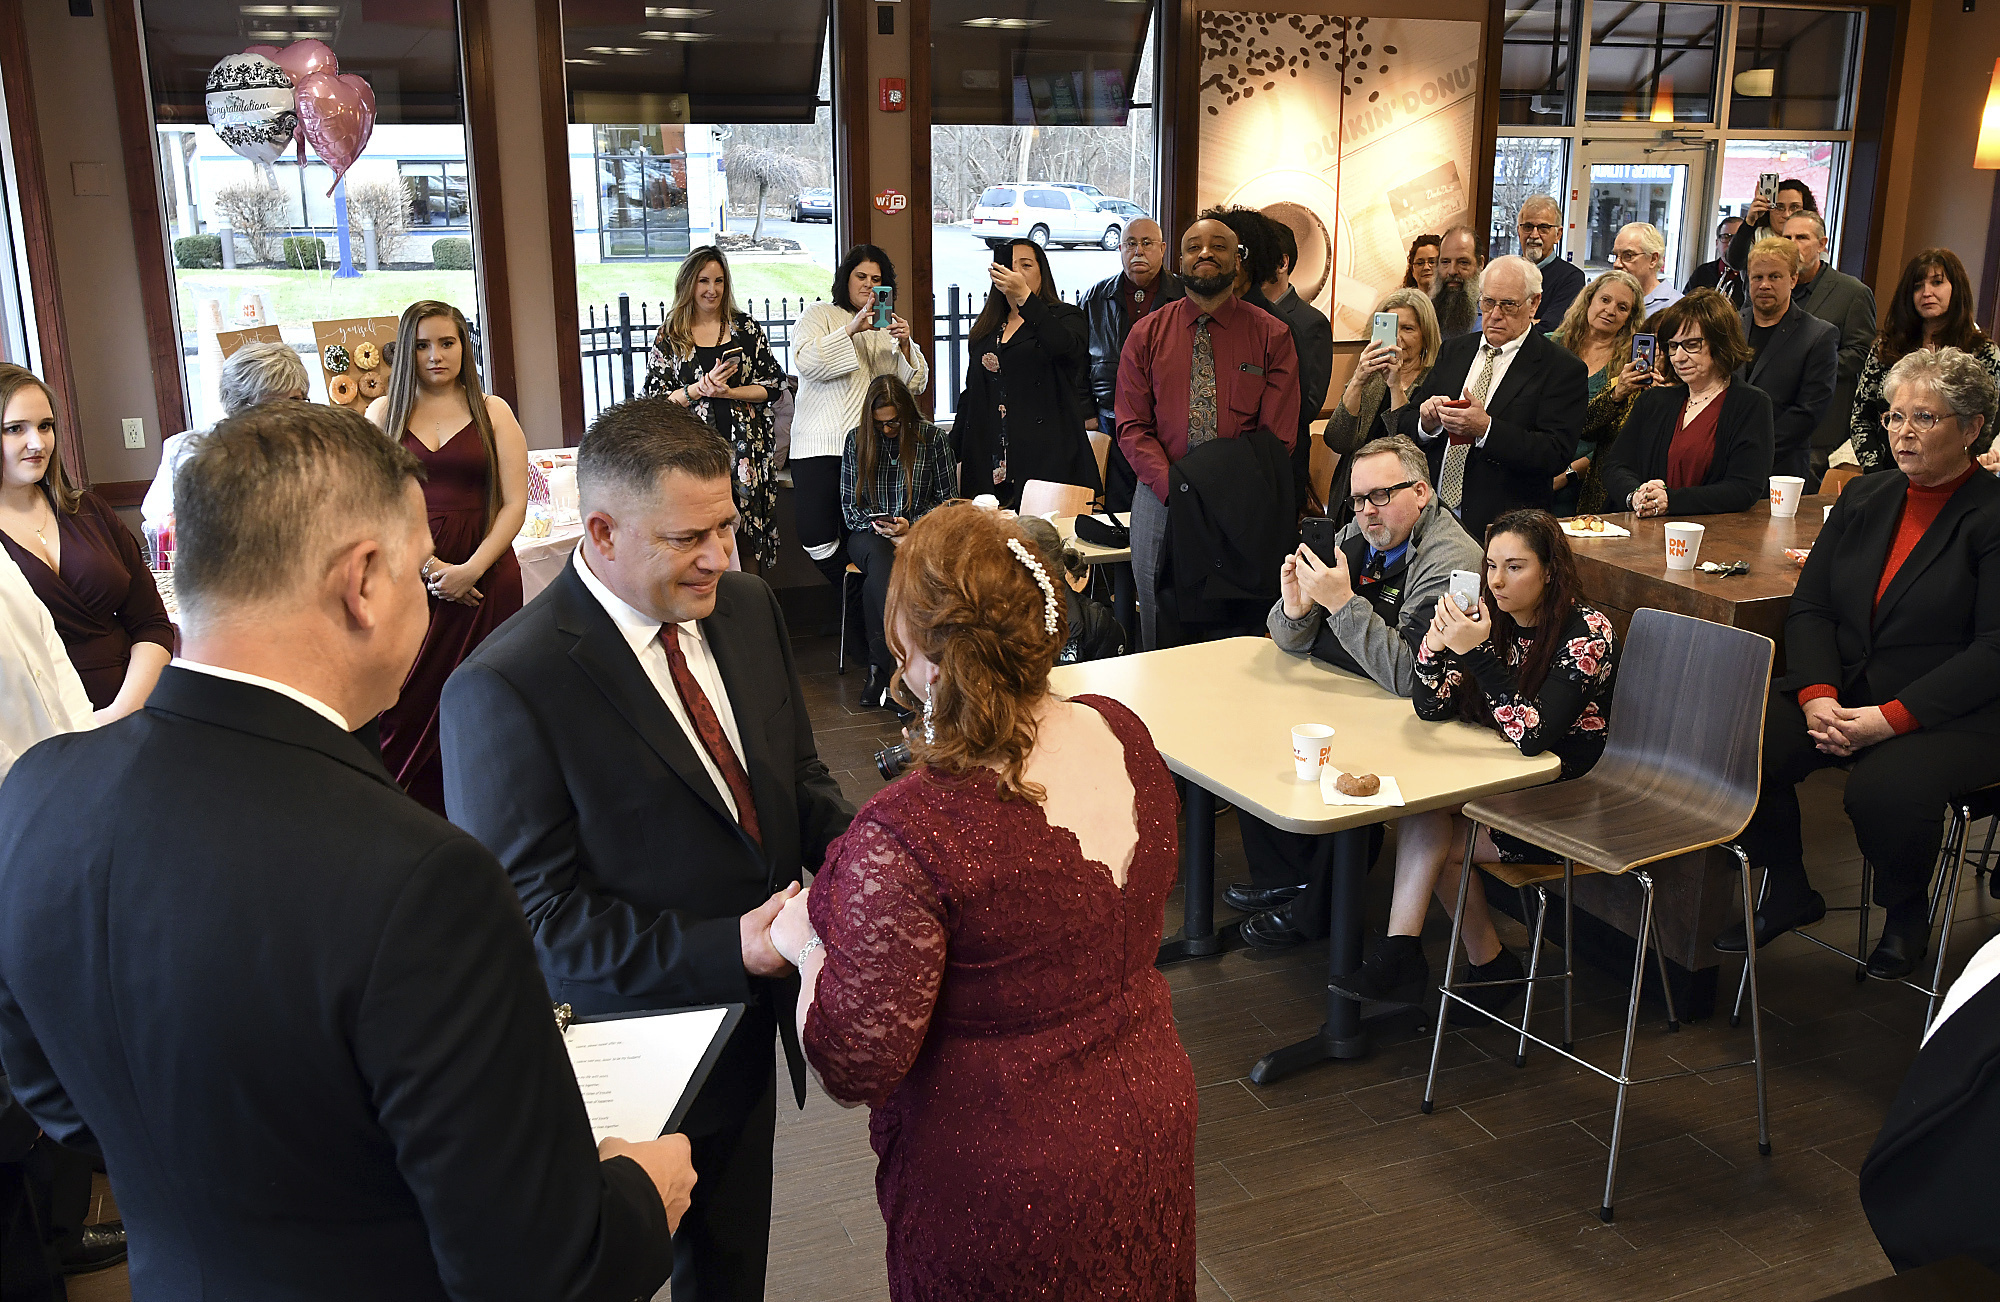 Dunkin Donuts wedding